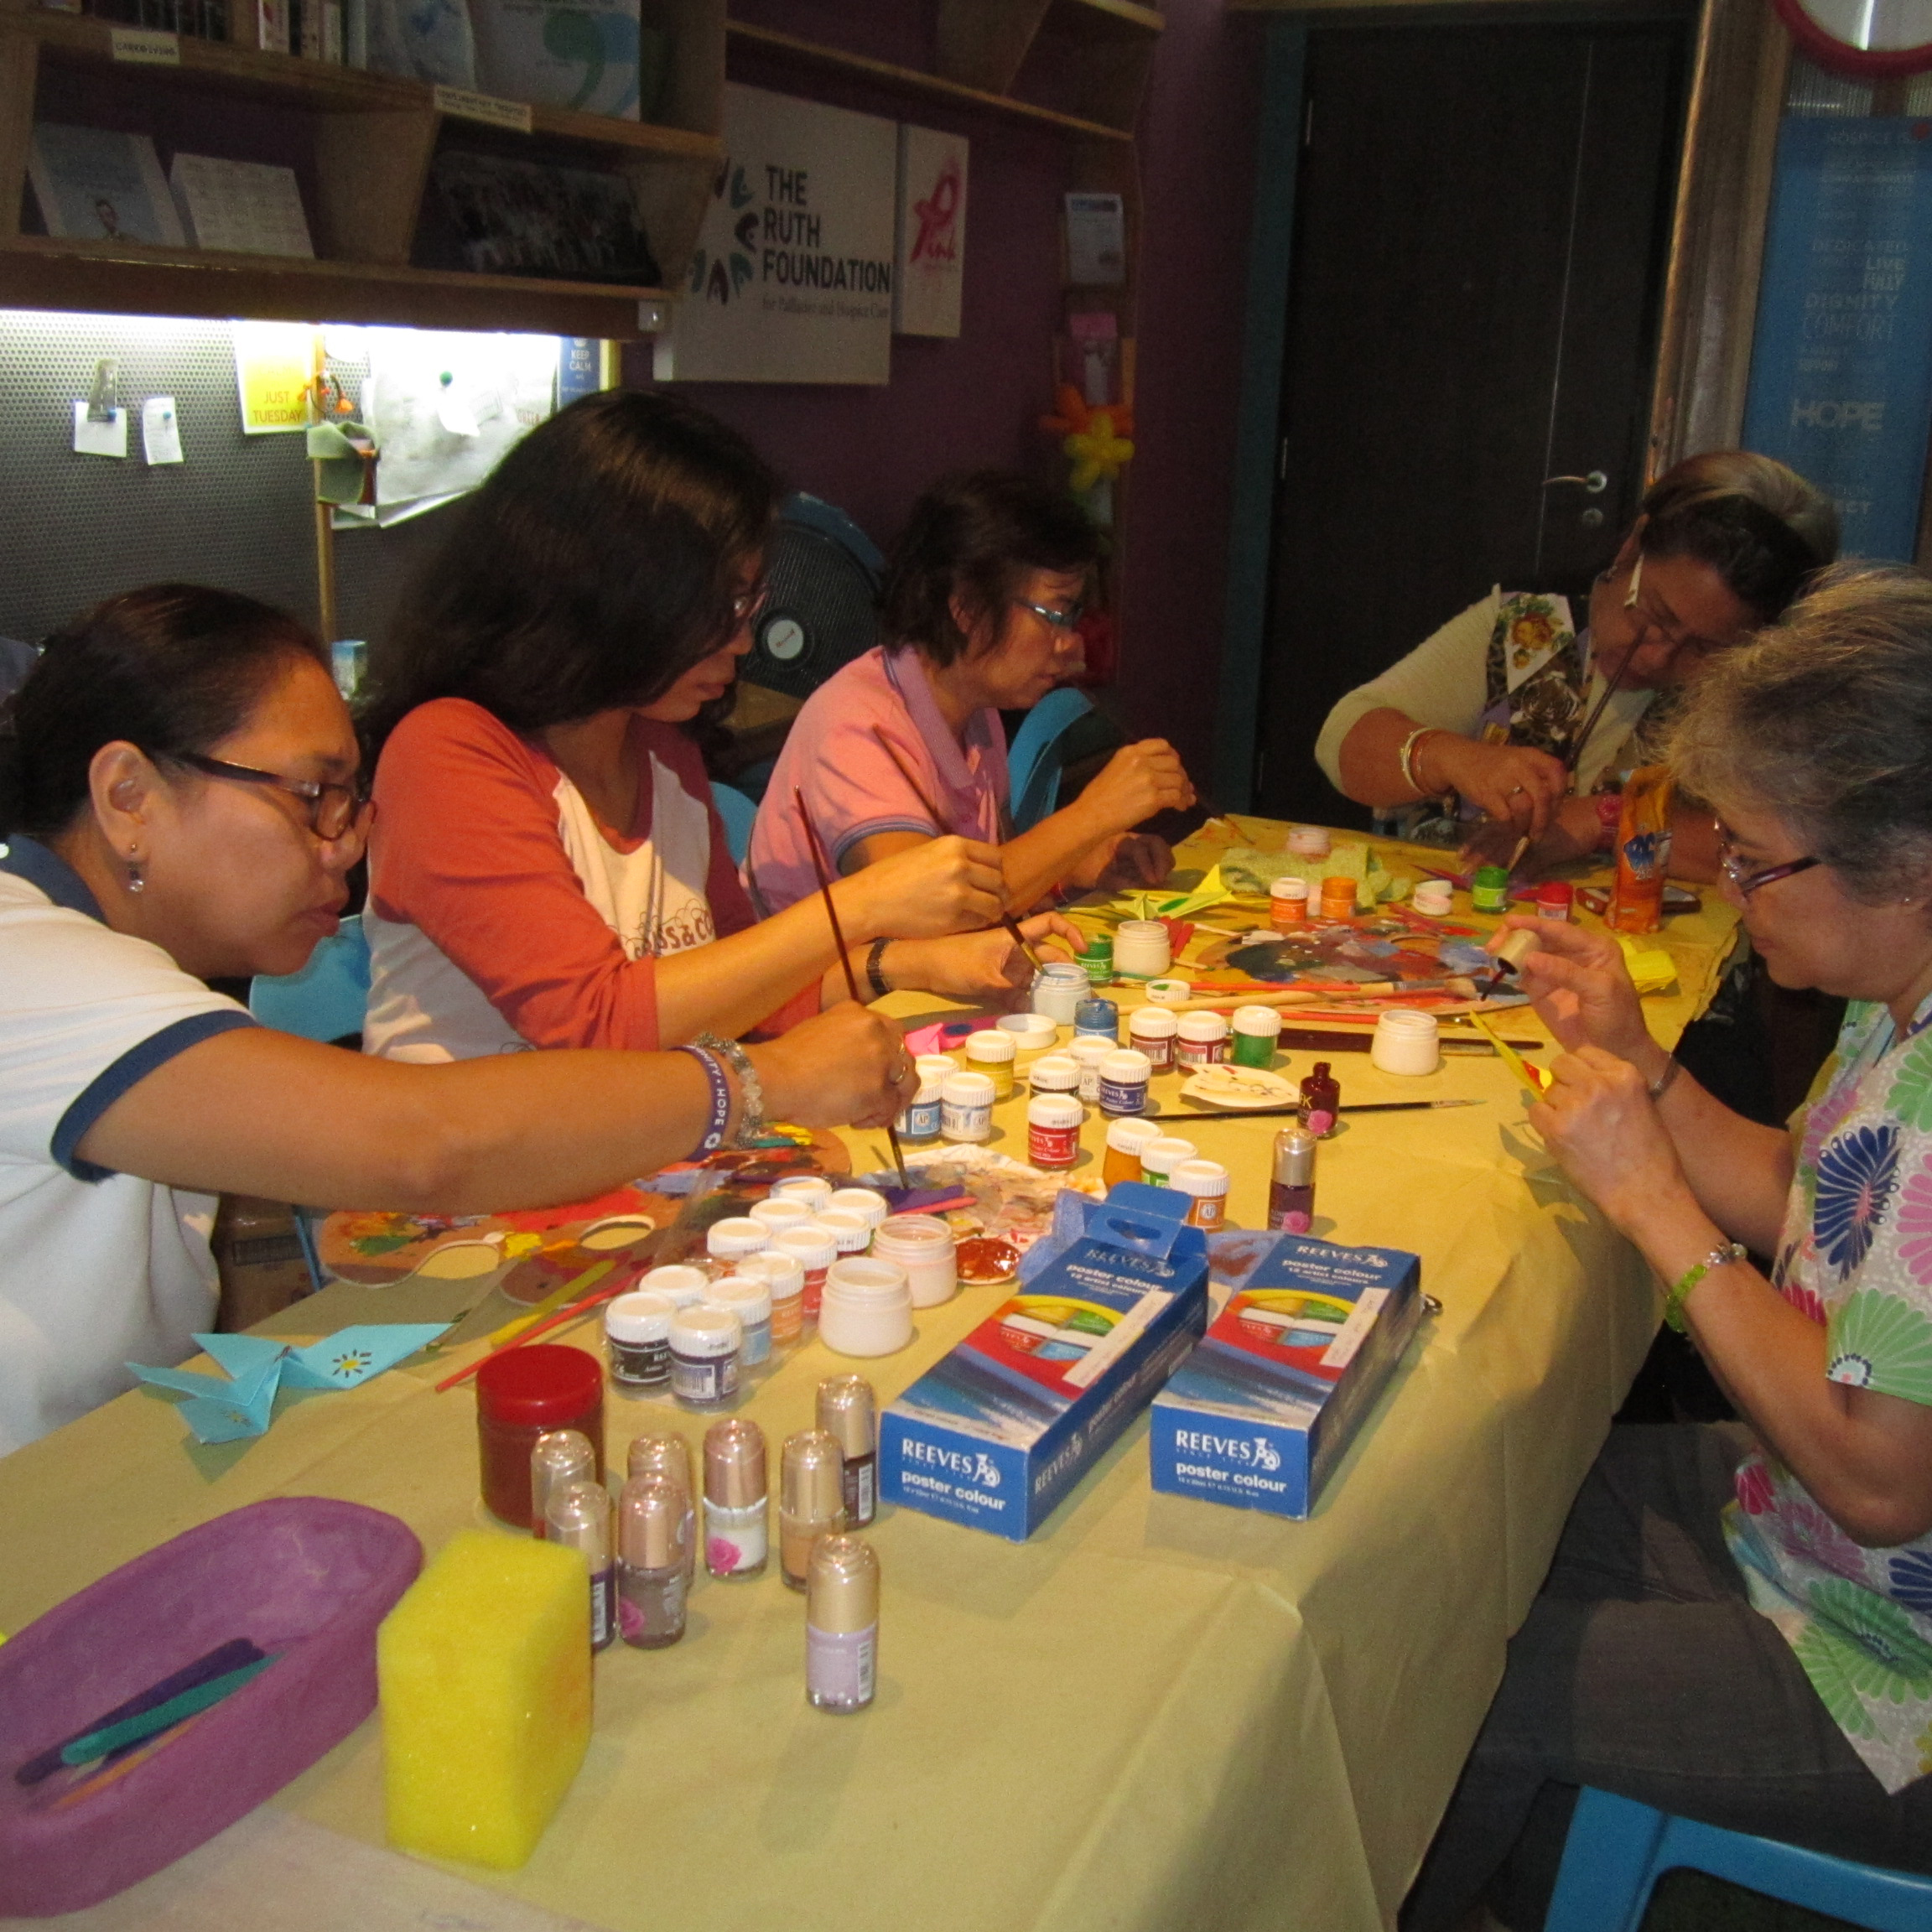 art therapy - We provide physical relief to our homebound patients and their caregivers through the capable hands of our massage therapists.